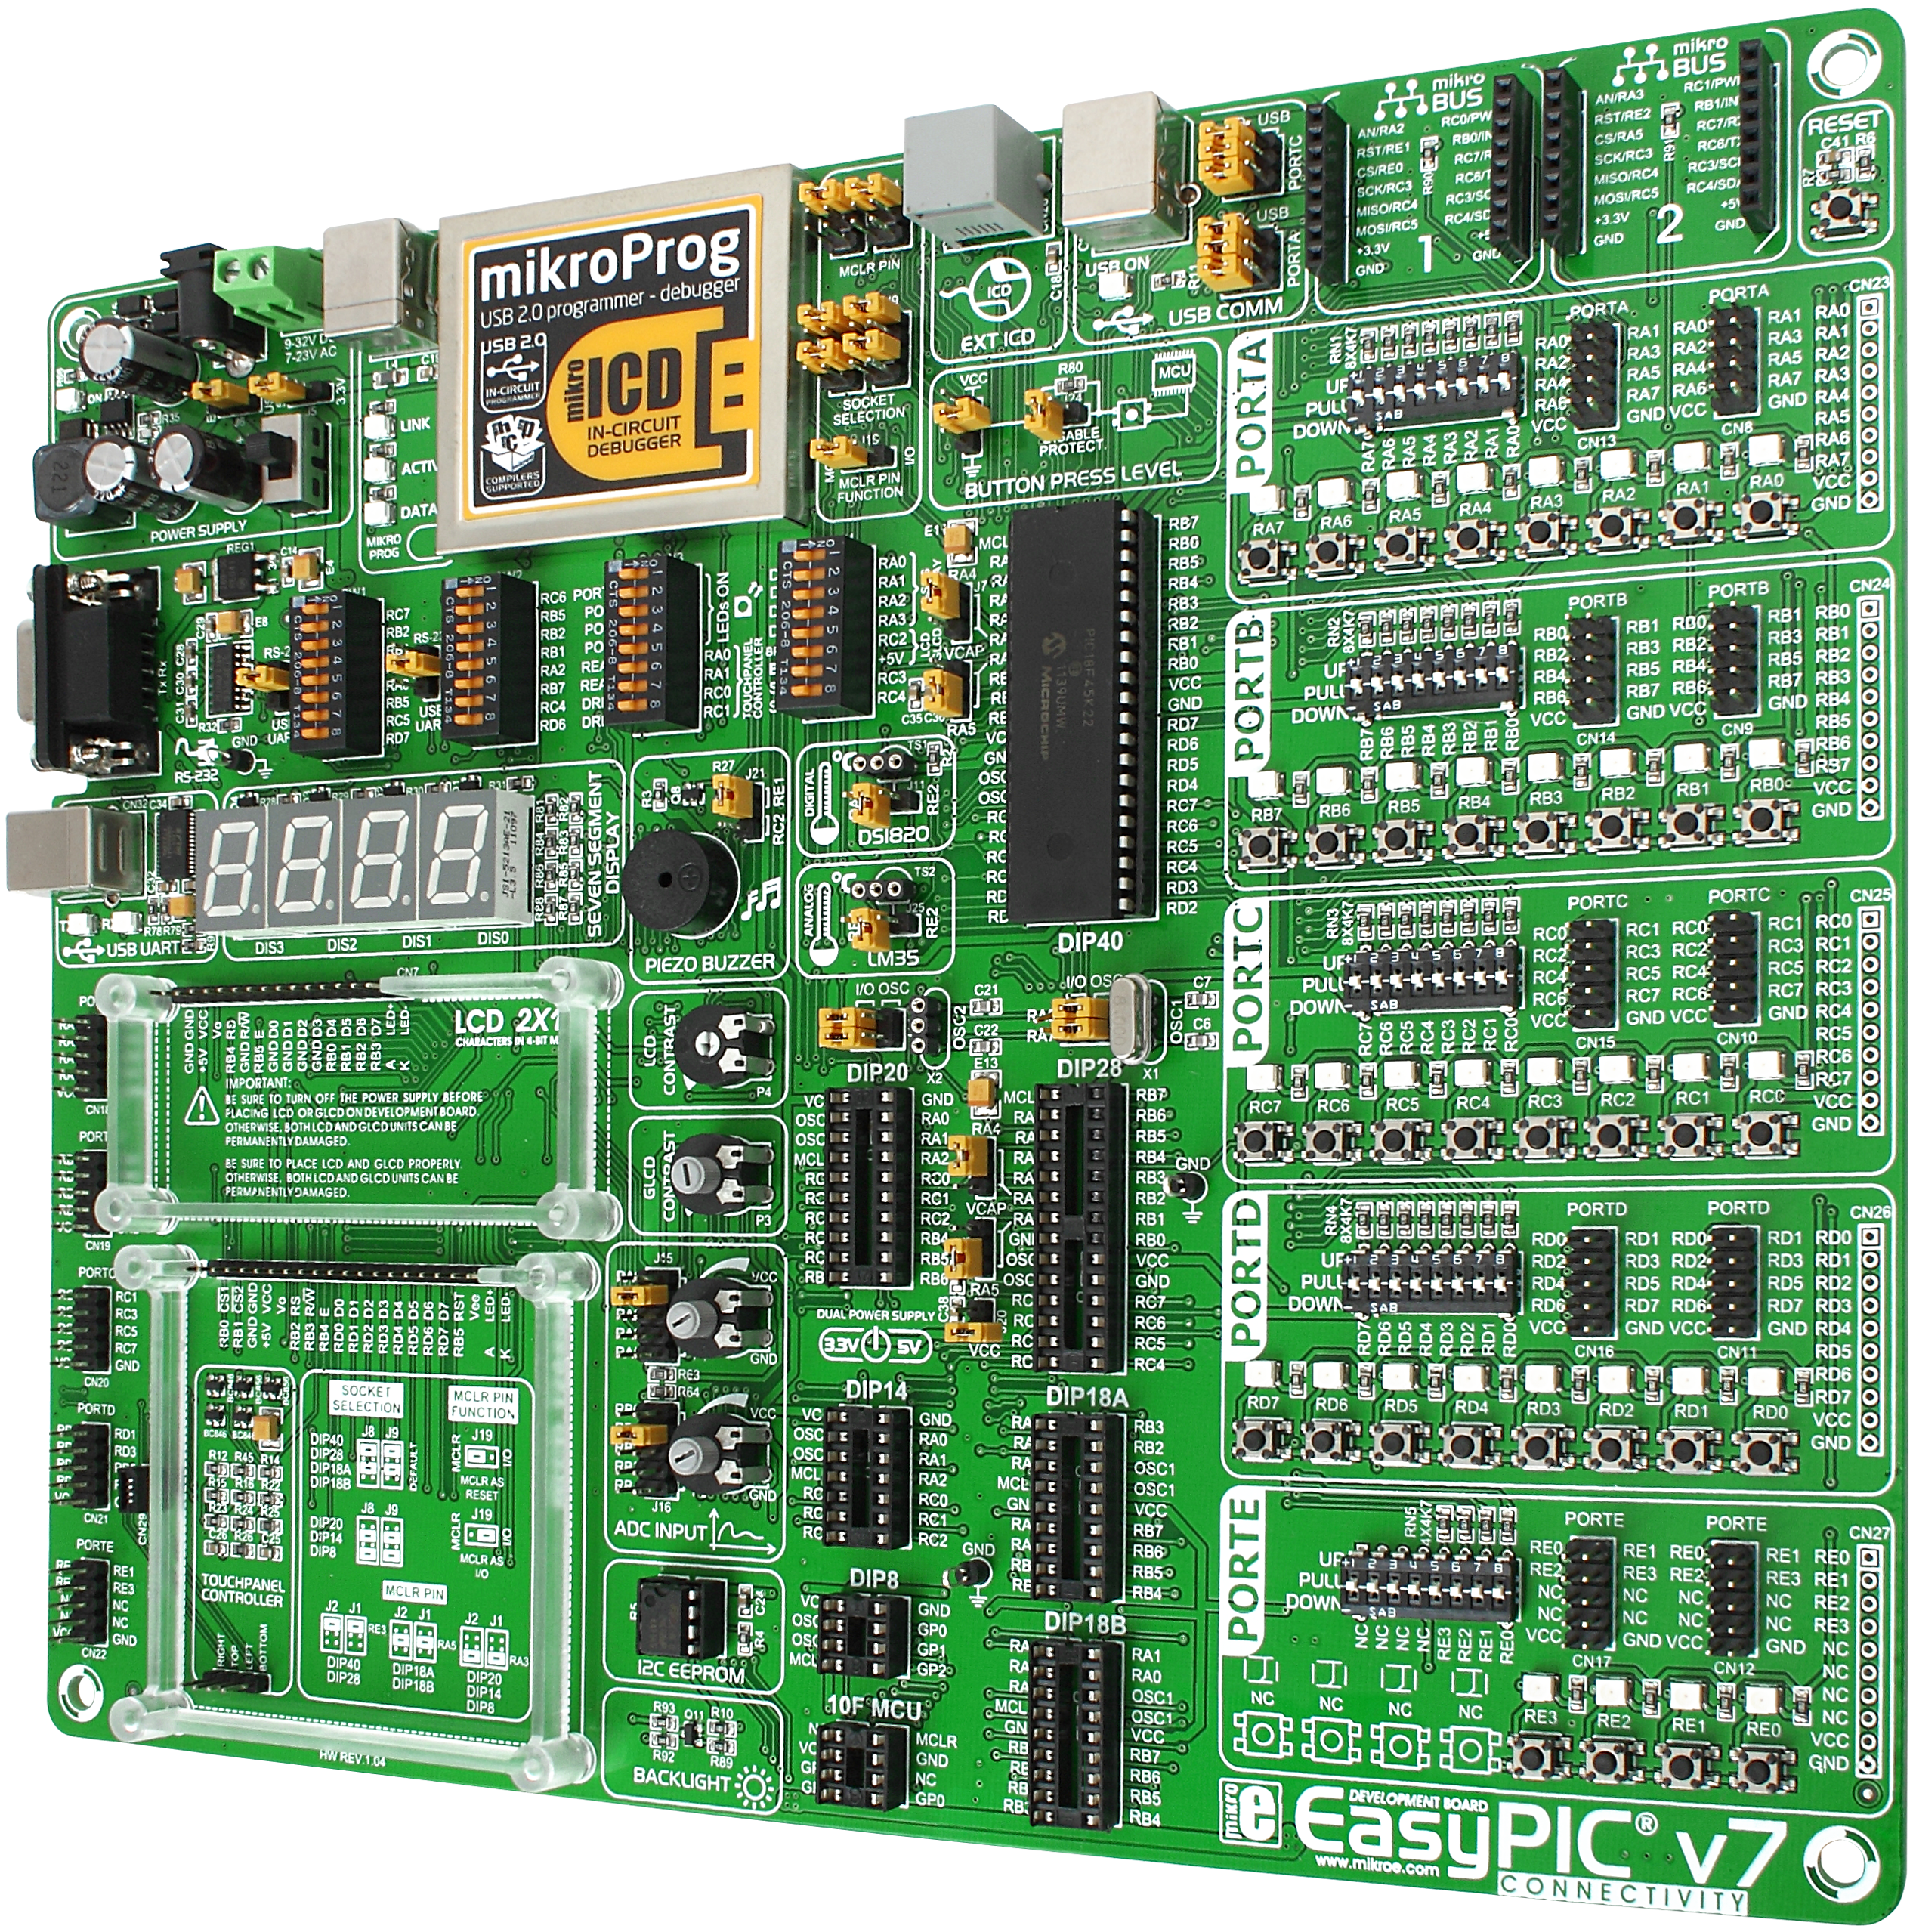 Buy Easypic V7 Development System At The Right Price Electrokit Interfacing Relay With 8051 Microcontroller Circuit Home